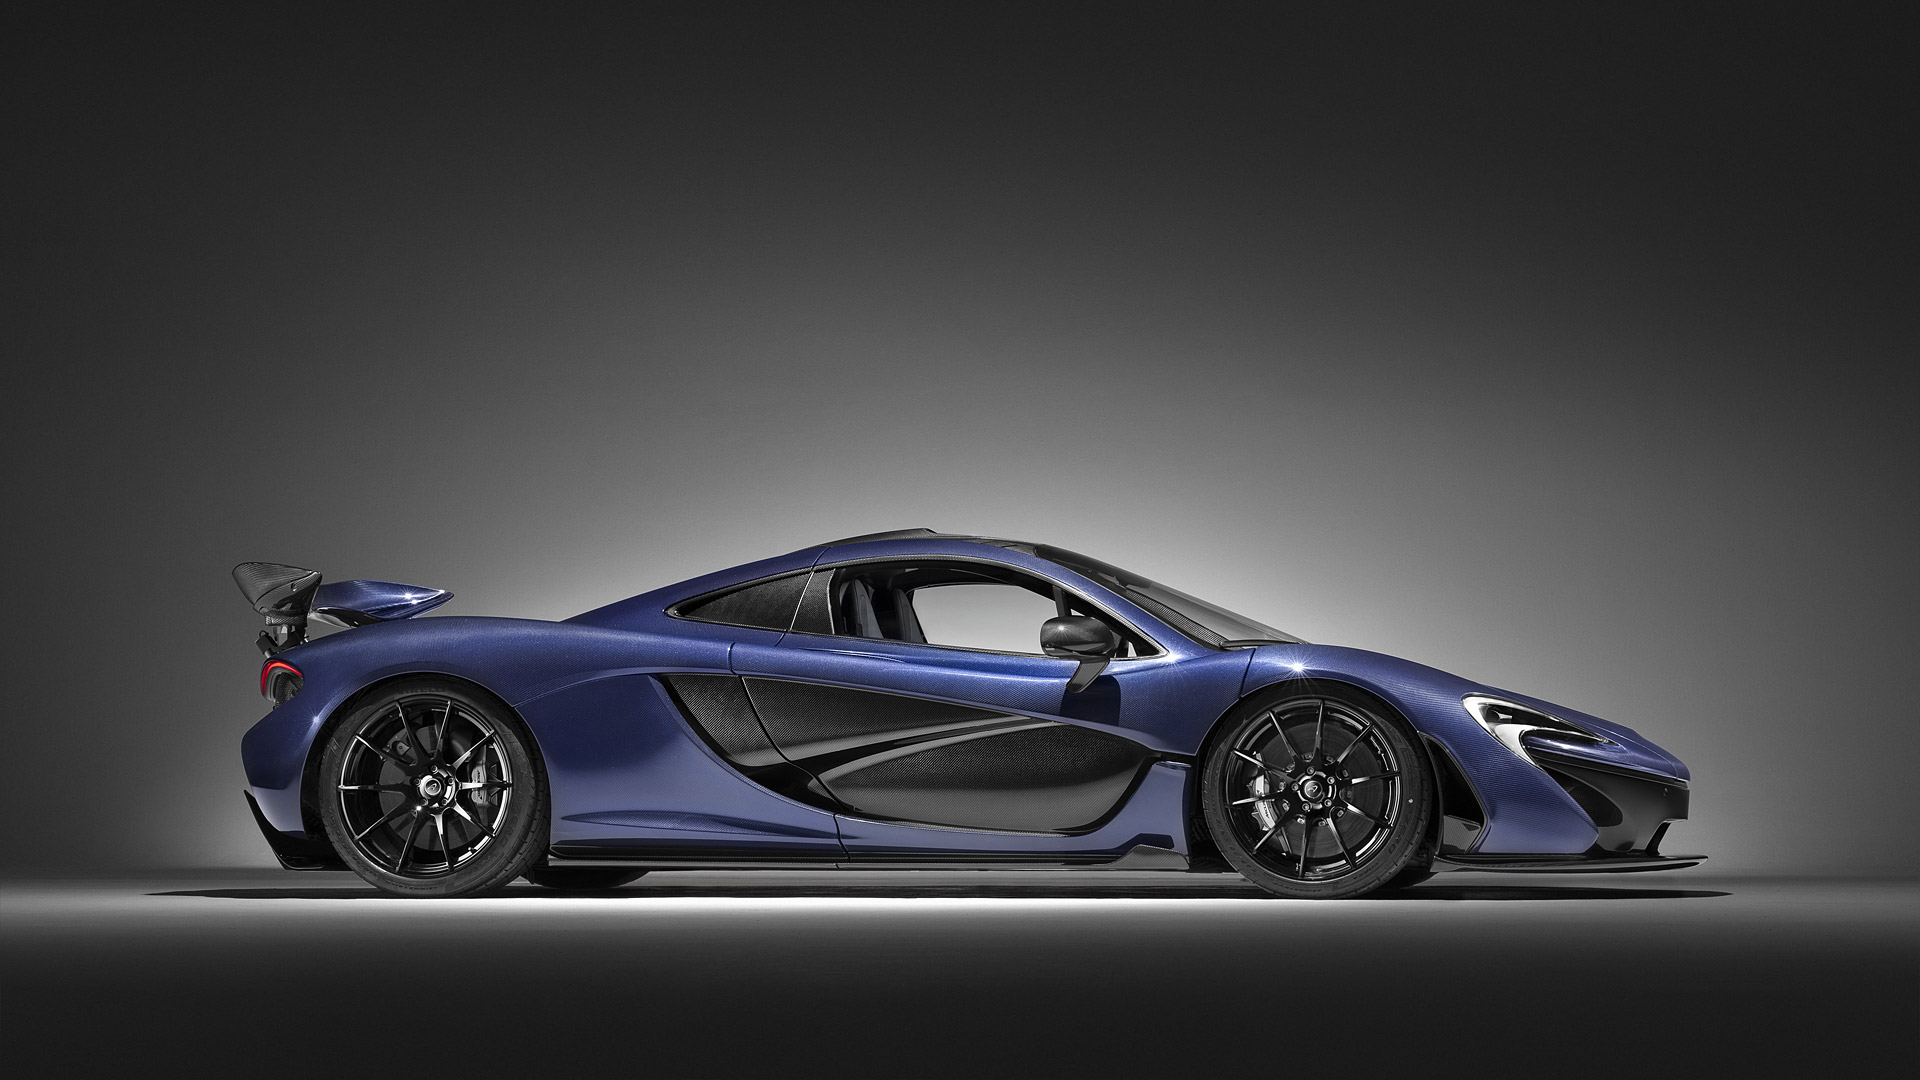 Mclaren P1 Side View 2 Hd Cars 4k Wallpapers Images Backgrounds